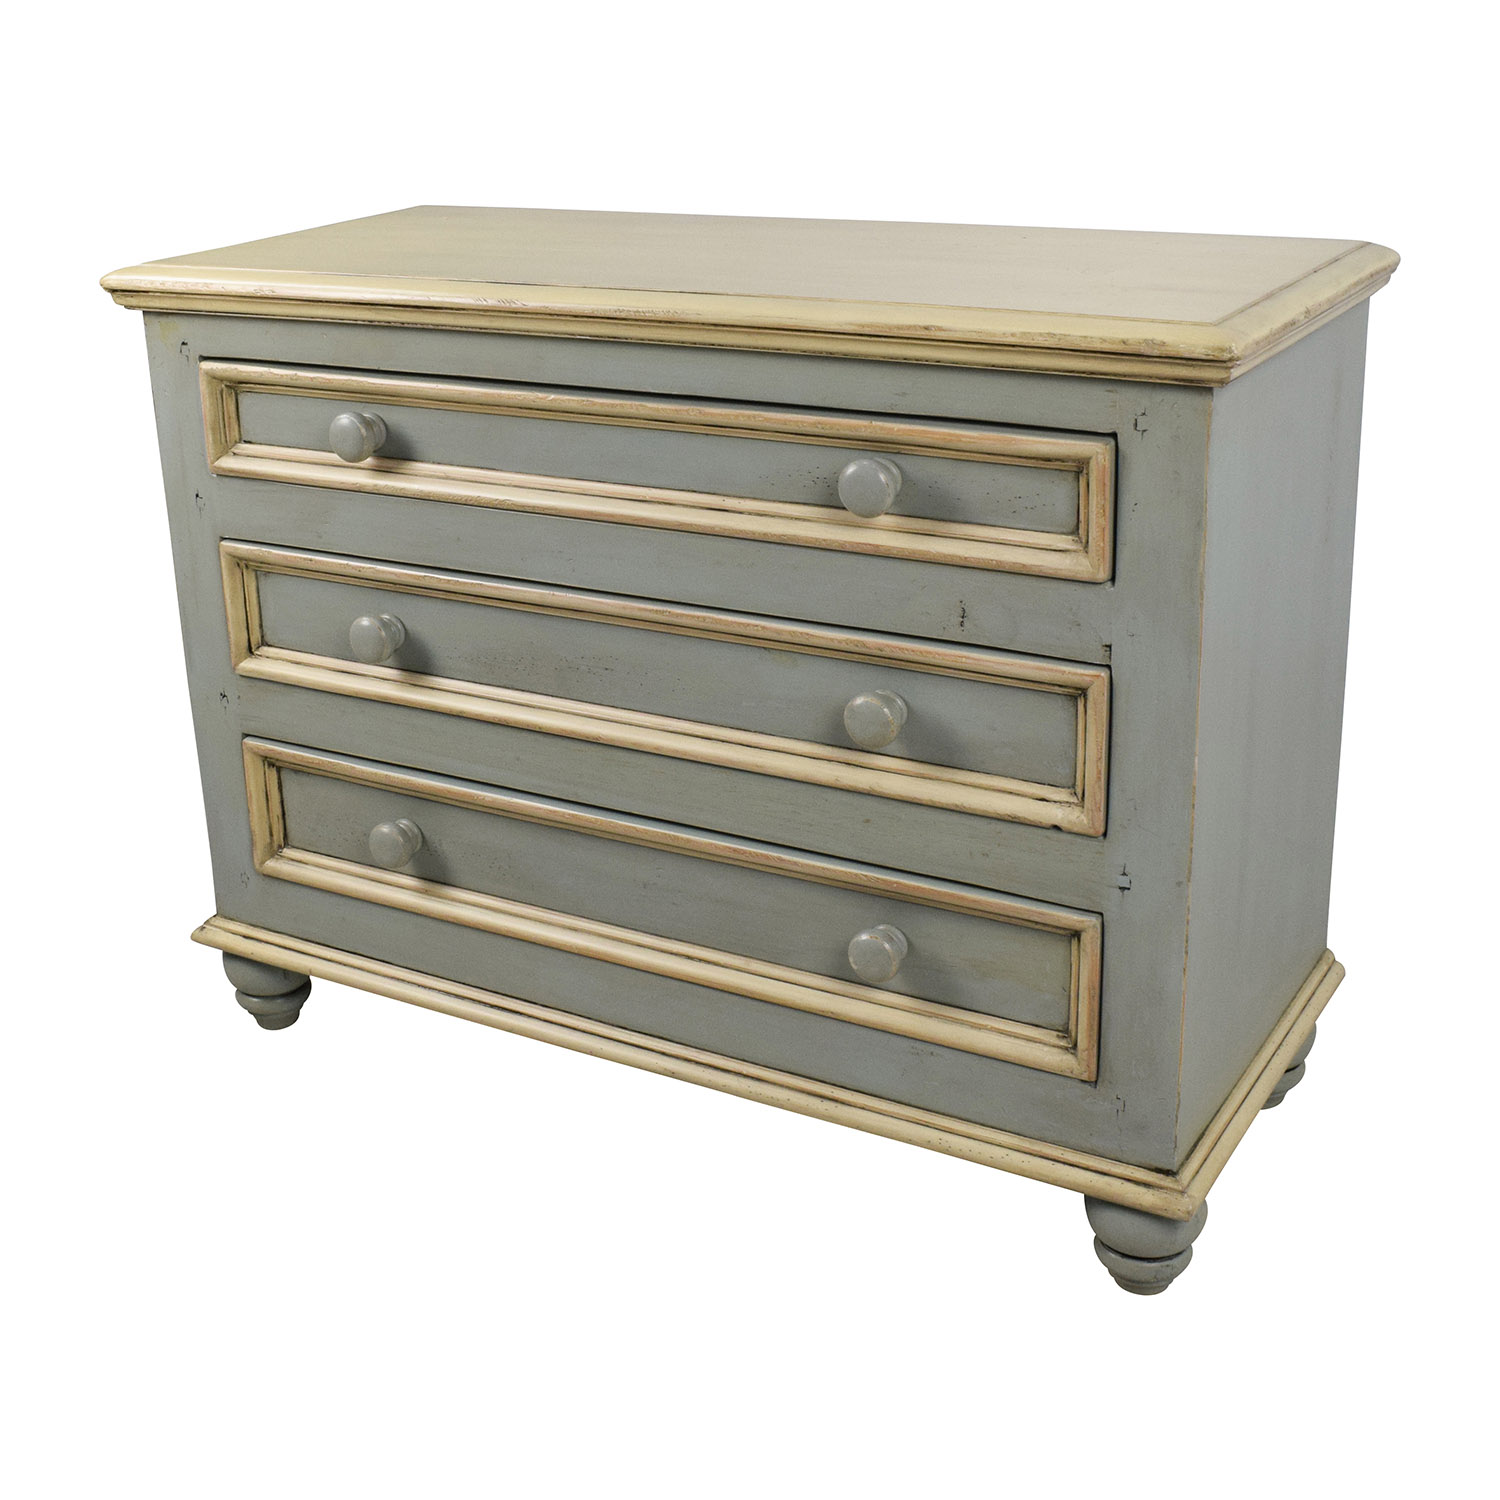 53% OFF Lillian August Lillian August Blue 3 Drawer Dresser